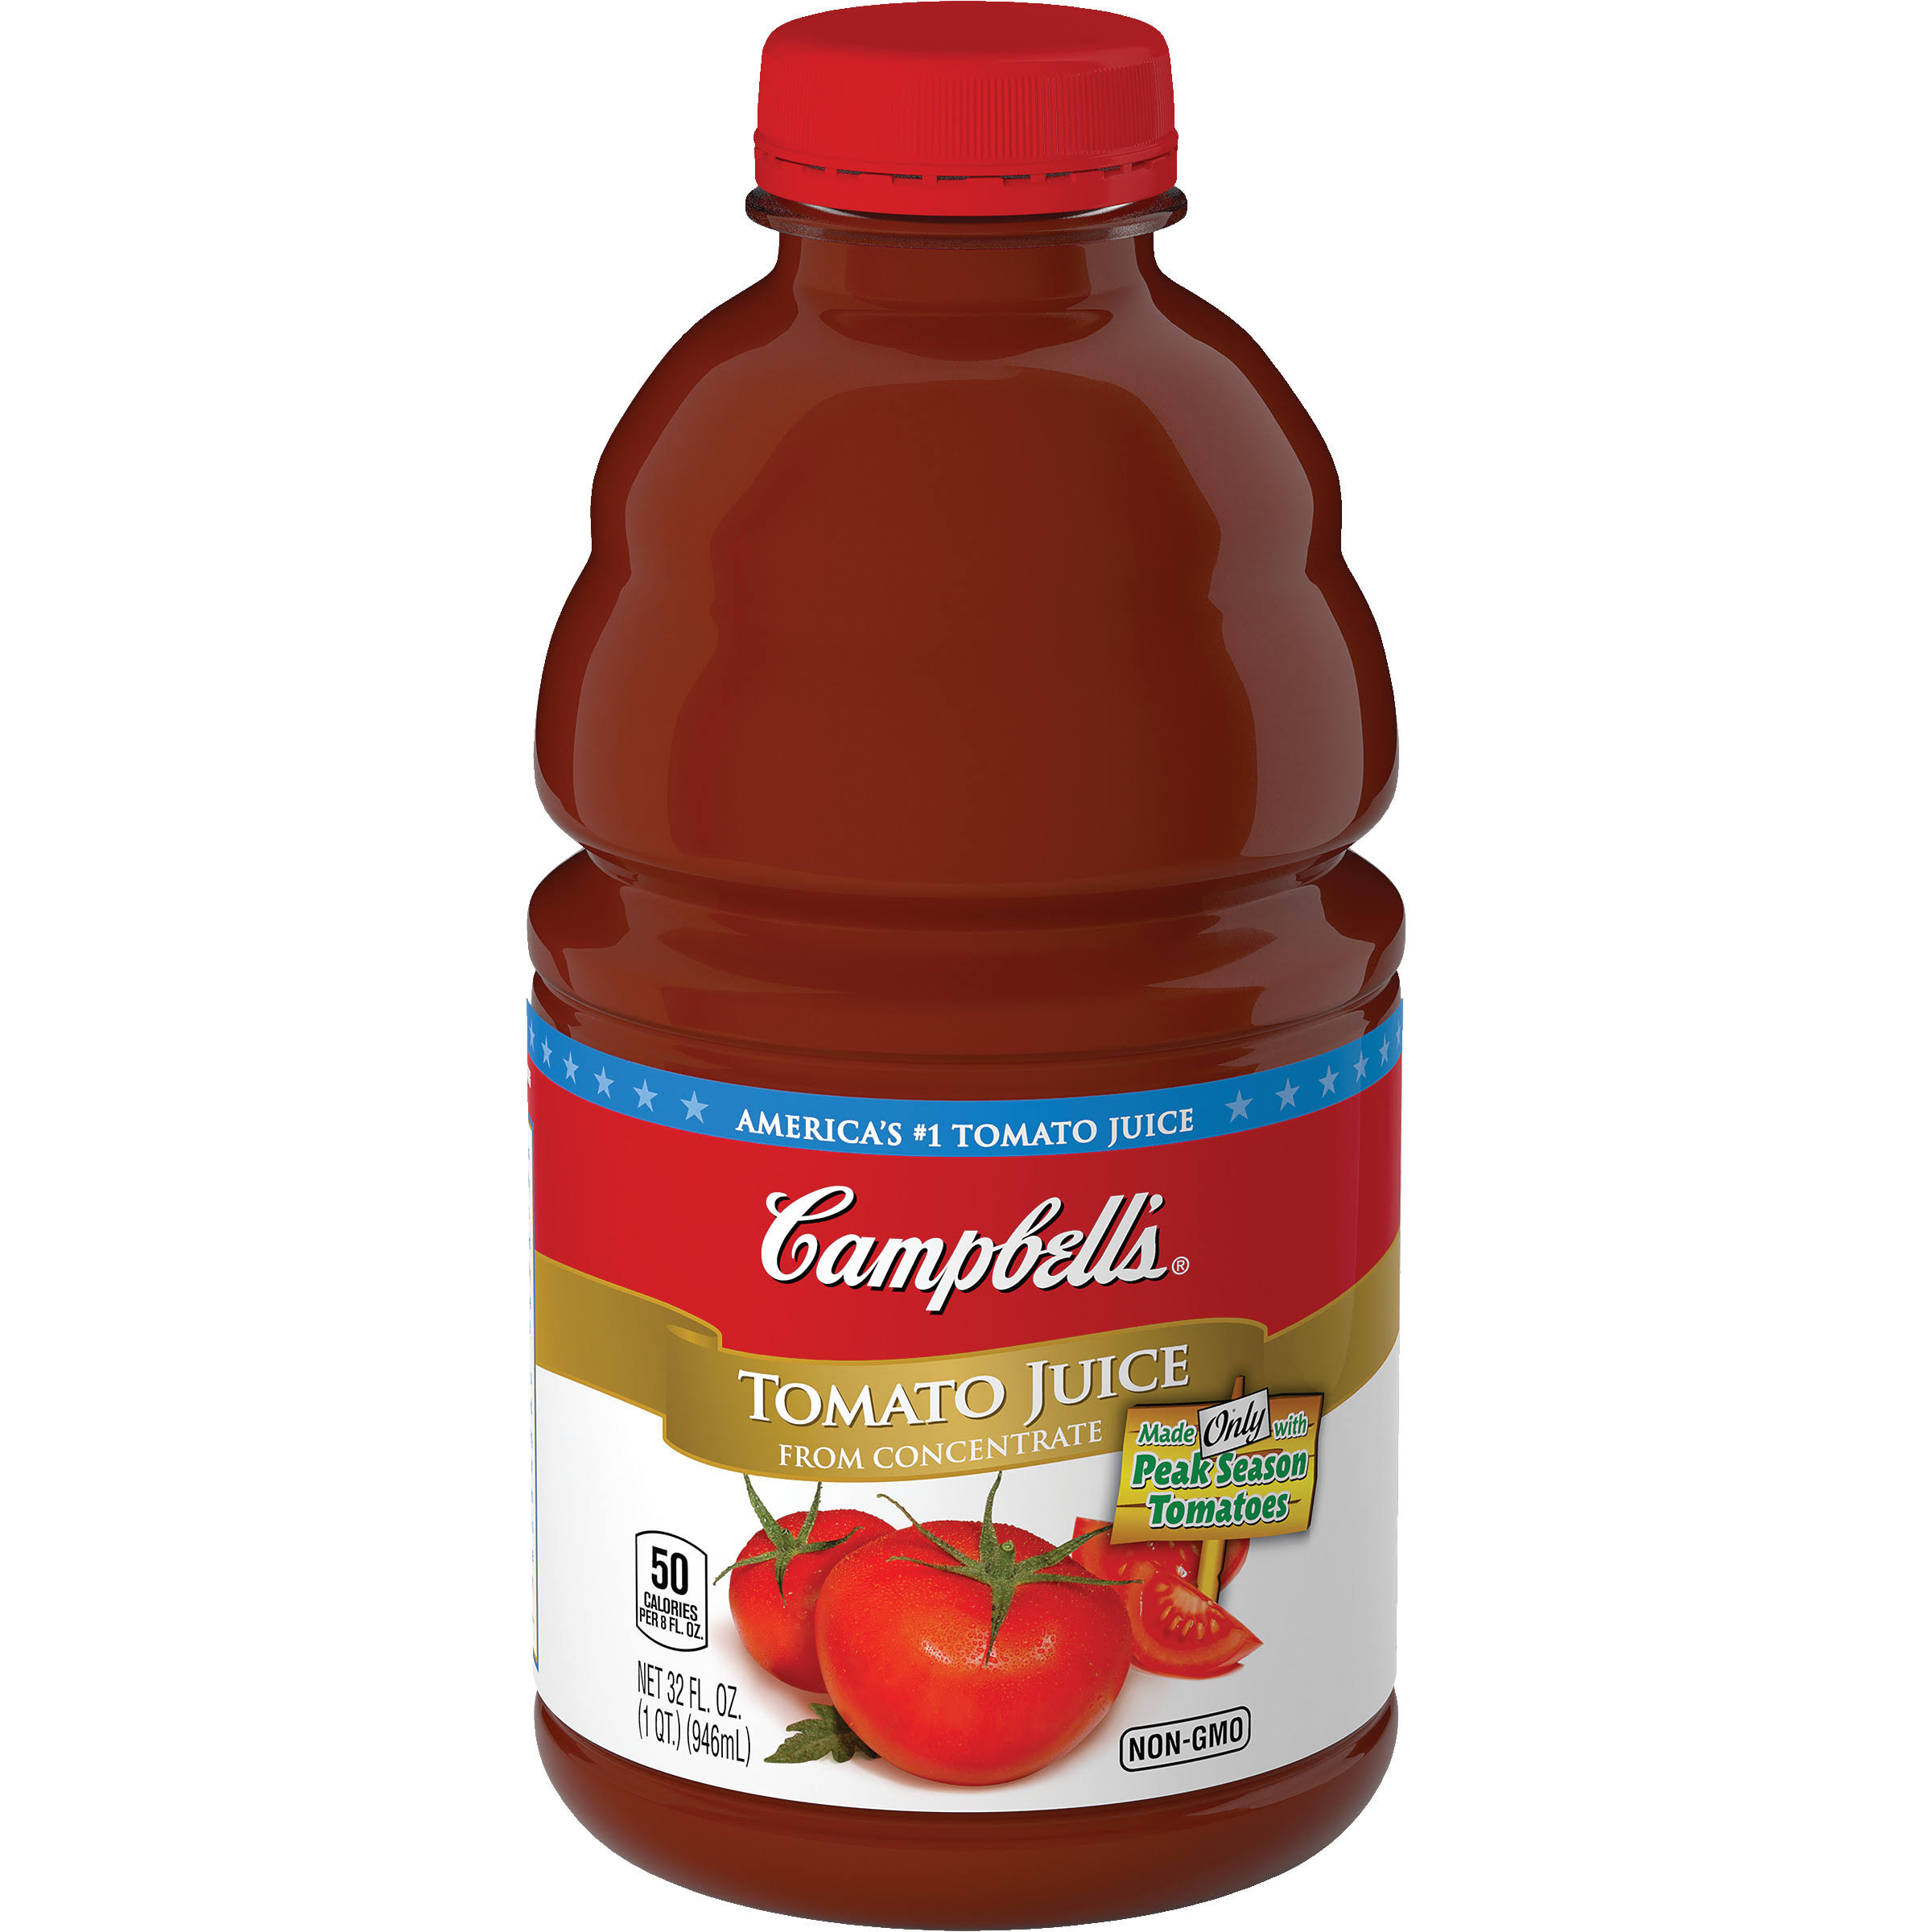 Campbells Tomato Juice - 946ml